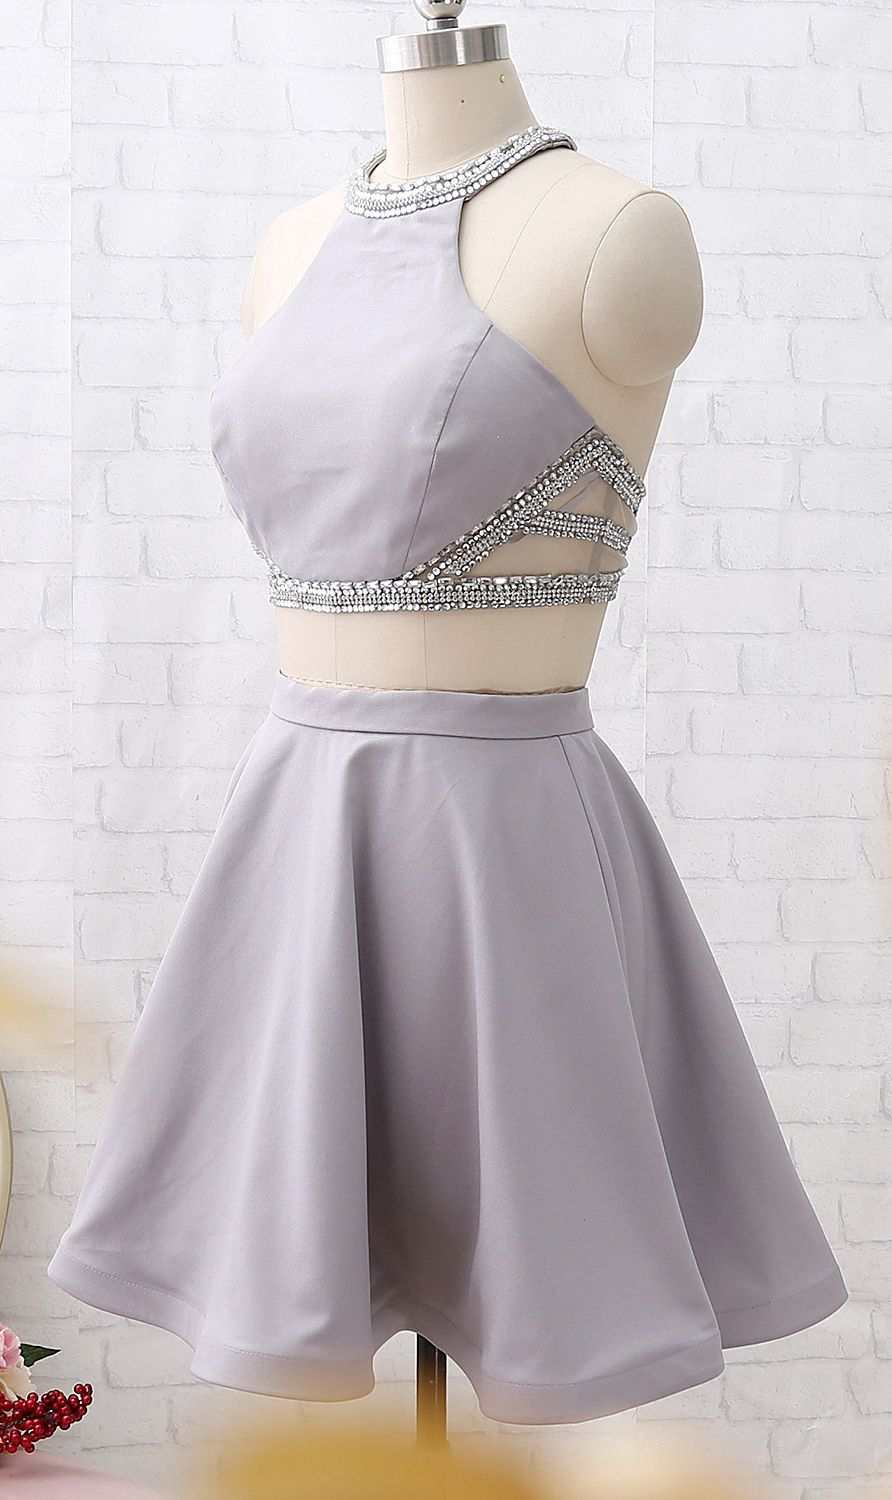 Macloth Two Piece Short Silver Mini Prom Homecoming Dress Wedding Party Dress Two Piece Homecoming Dress Mini Homecoming Dresses Homecoming Dresses [ 1500 x 892 Pixel ]